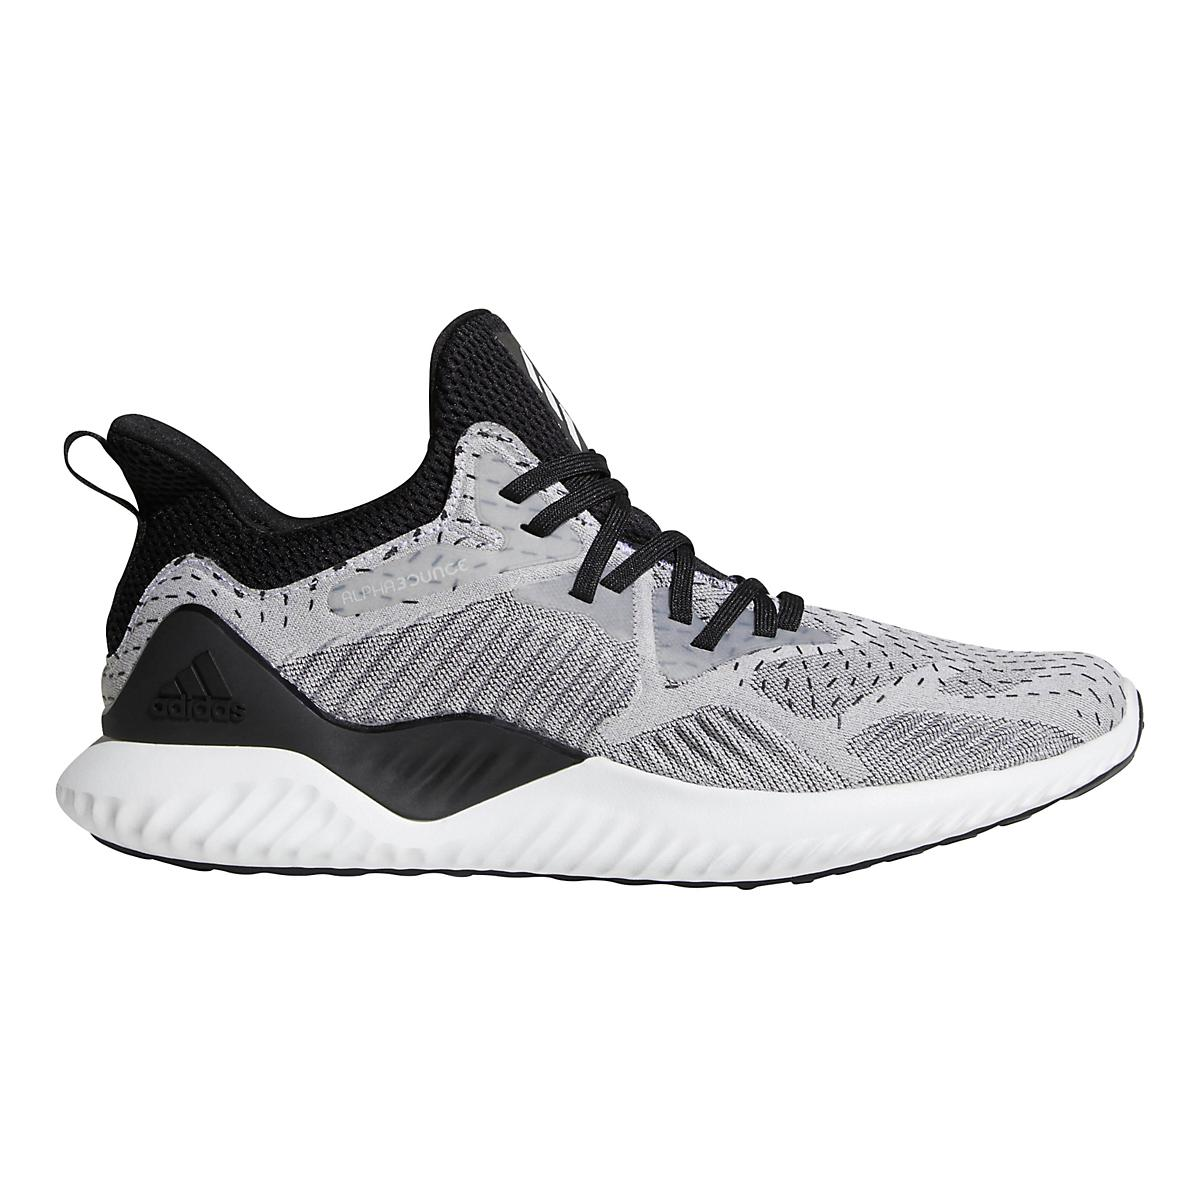 512c9e8c764c70 Mens adidas alphabounce beyond Running Shoe at Road Runner Sports